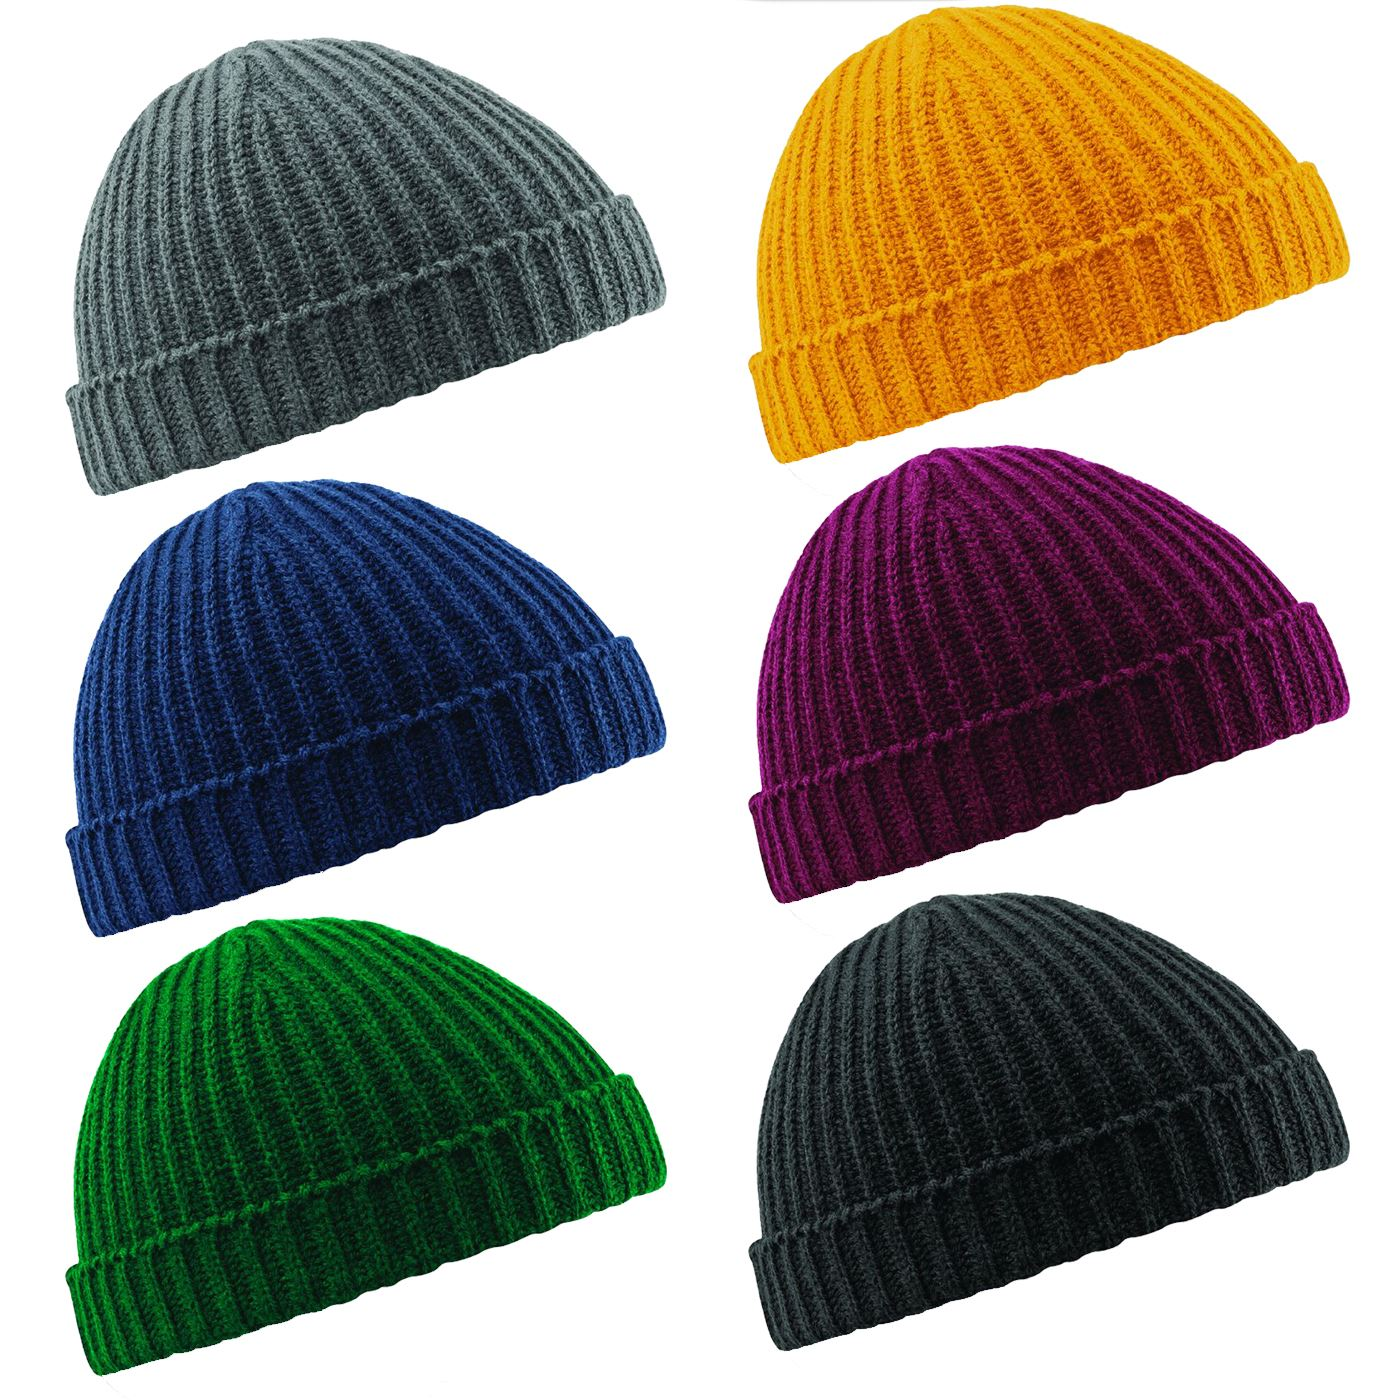 688e569b81100 Details about Beechfield Trawler Beanie Hat Fisherman Retro Hipster Style  Knitted Look